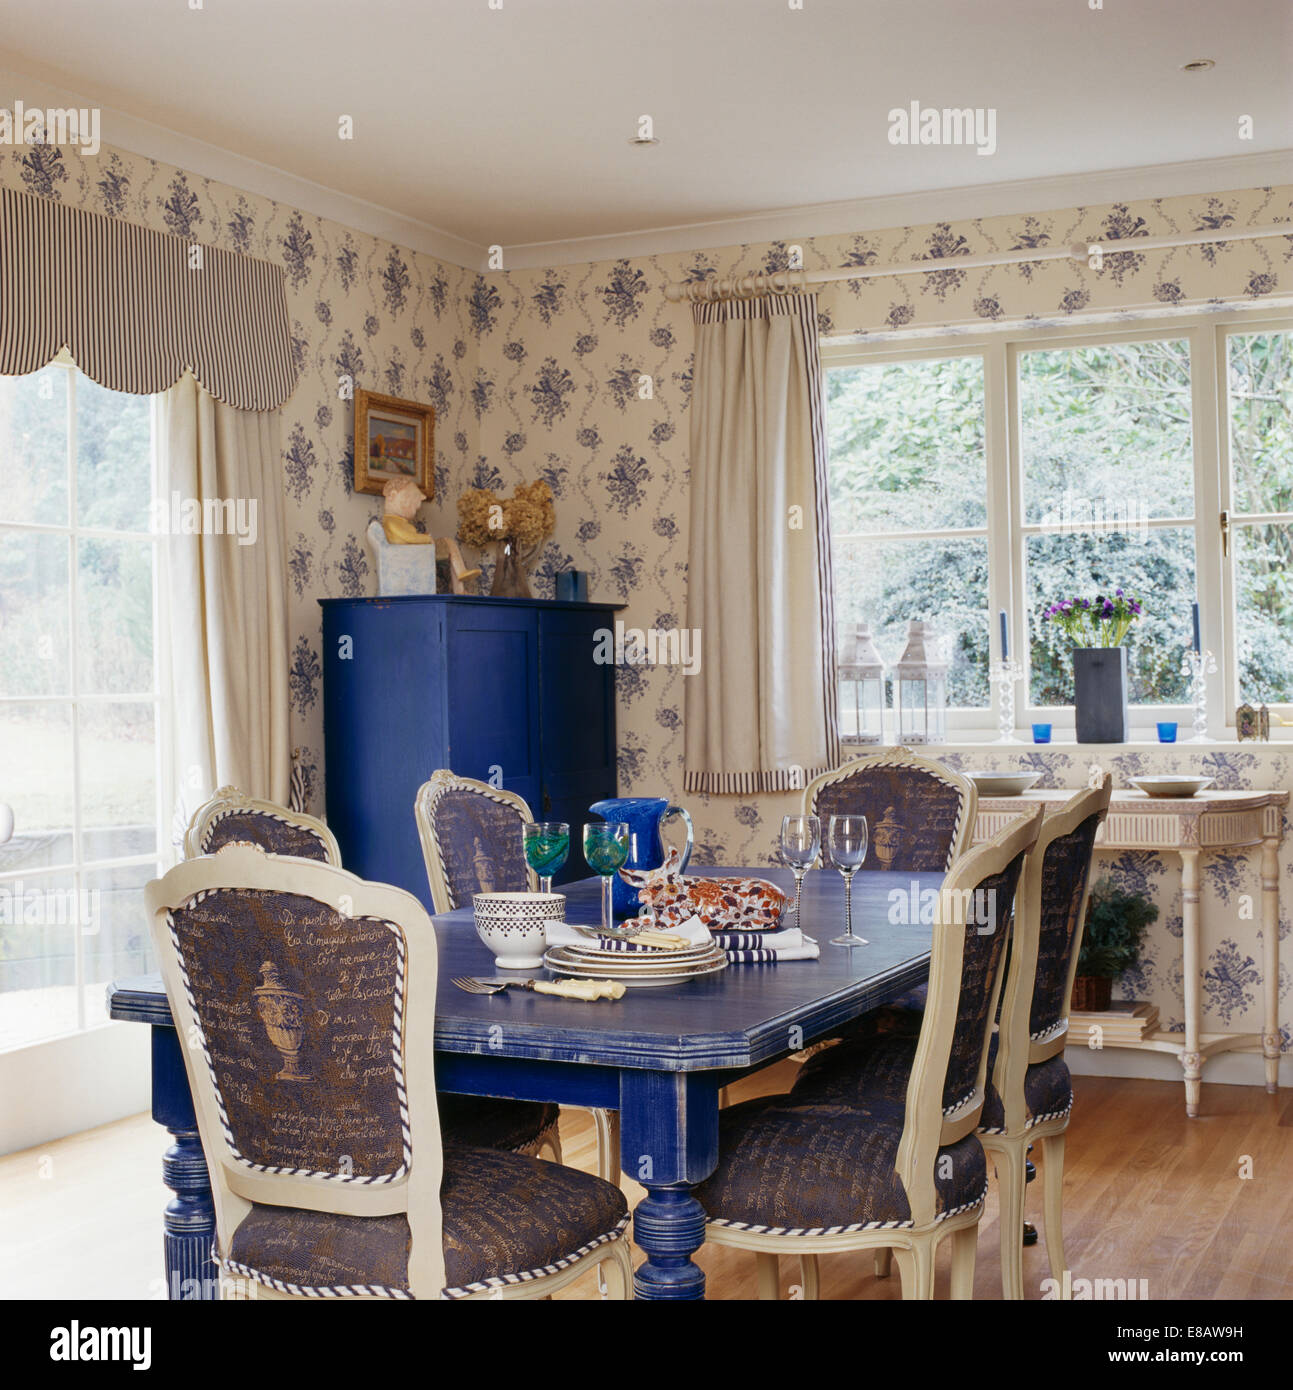 blue and white upholstered chairs stidd chair accessories painted table in country dining room with patterned wallpaper